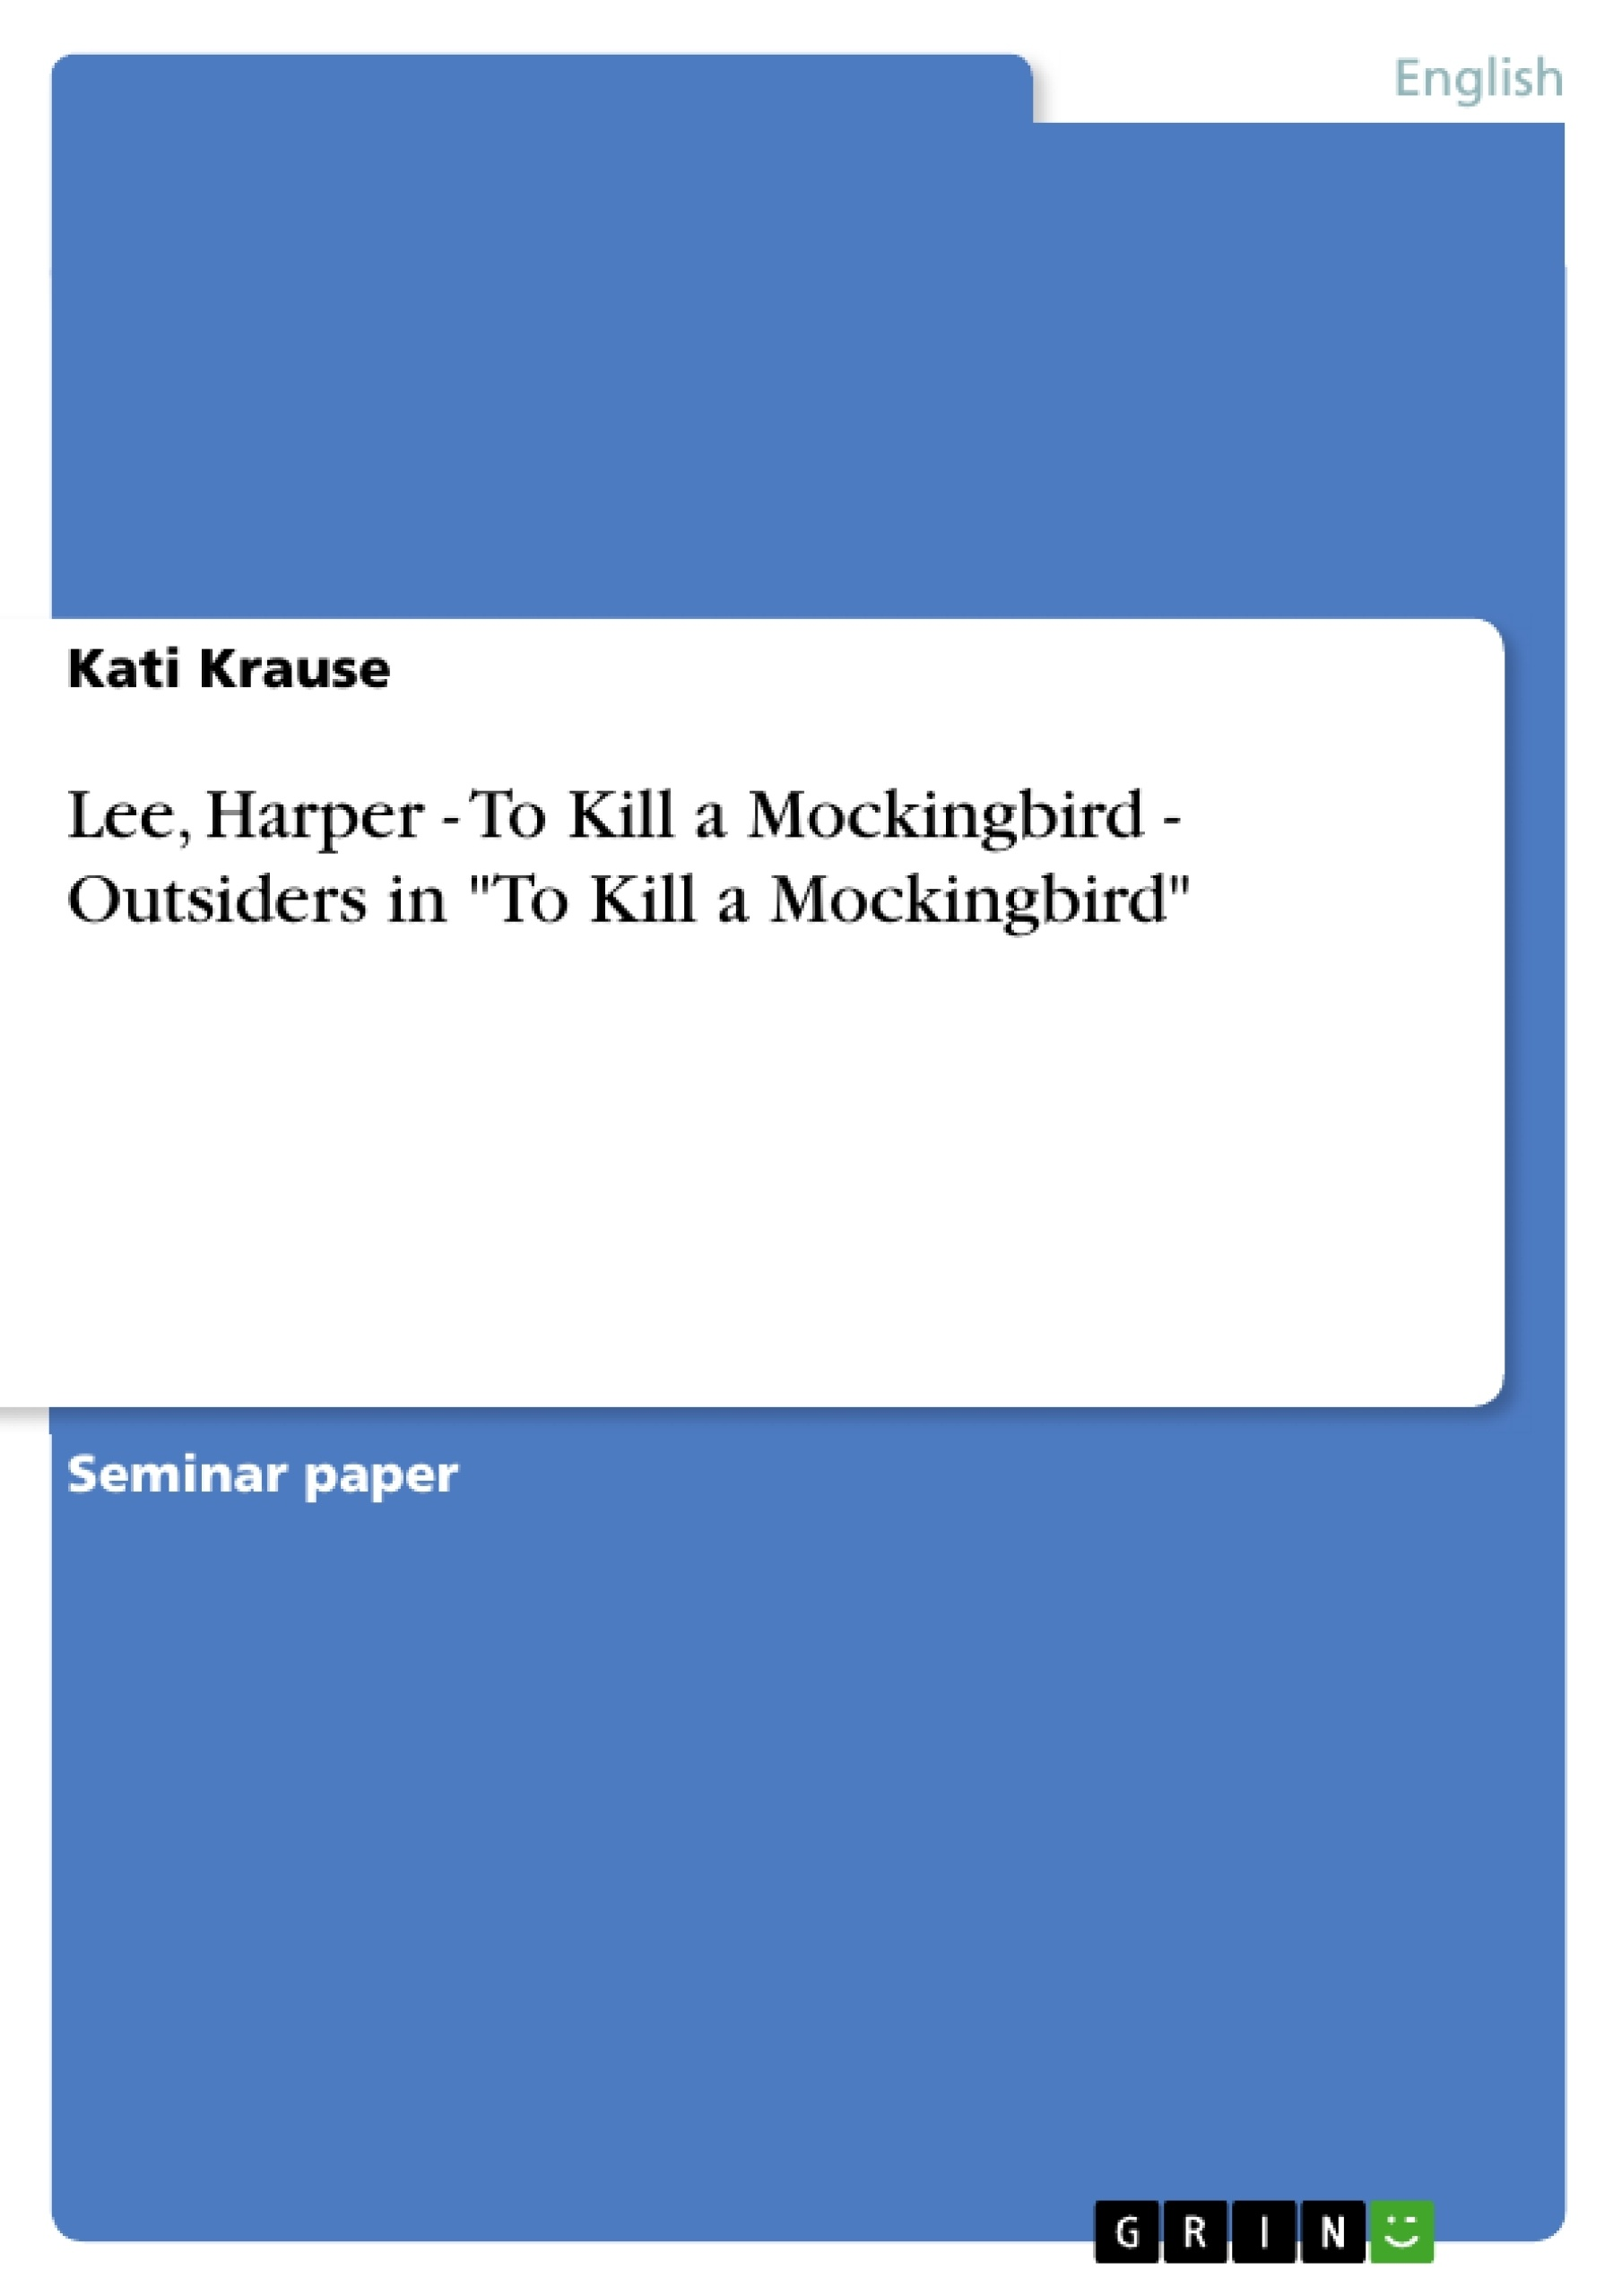 019 Essay Example Questions For To Kill Mockingbird Part 102122 0 Impressive A 1 Discussion Chapter 16 14 15 Full